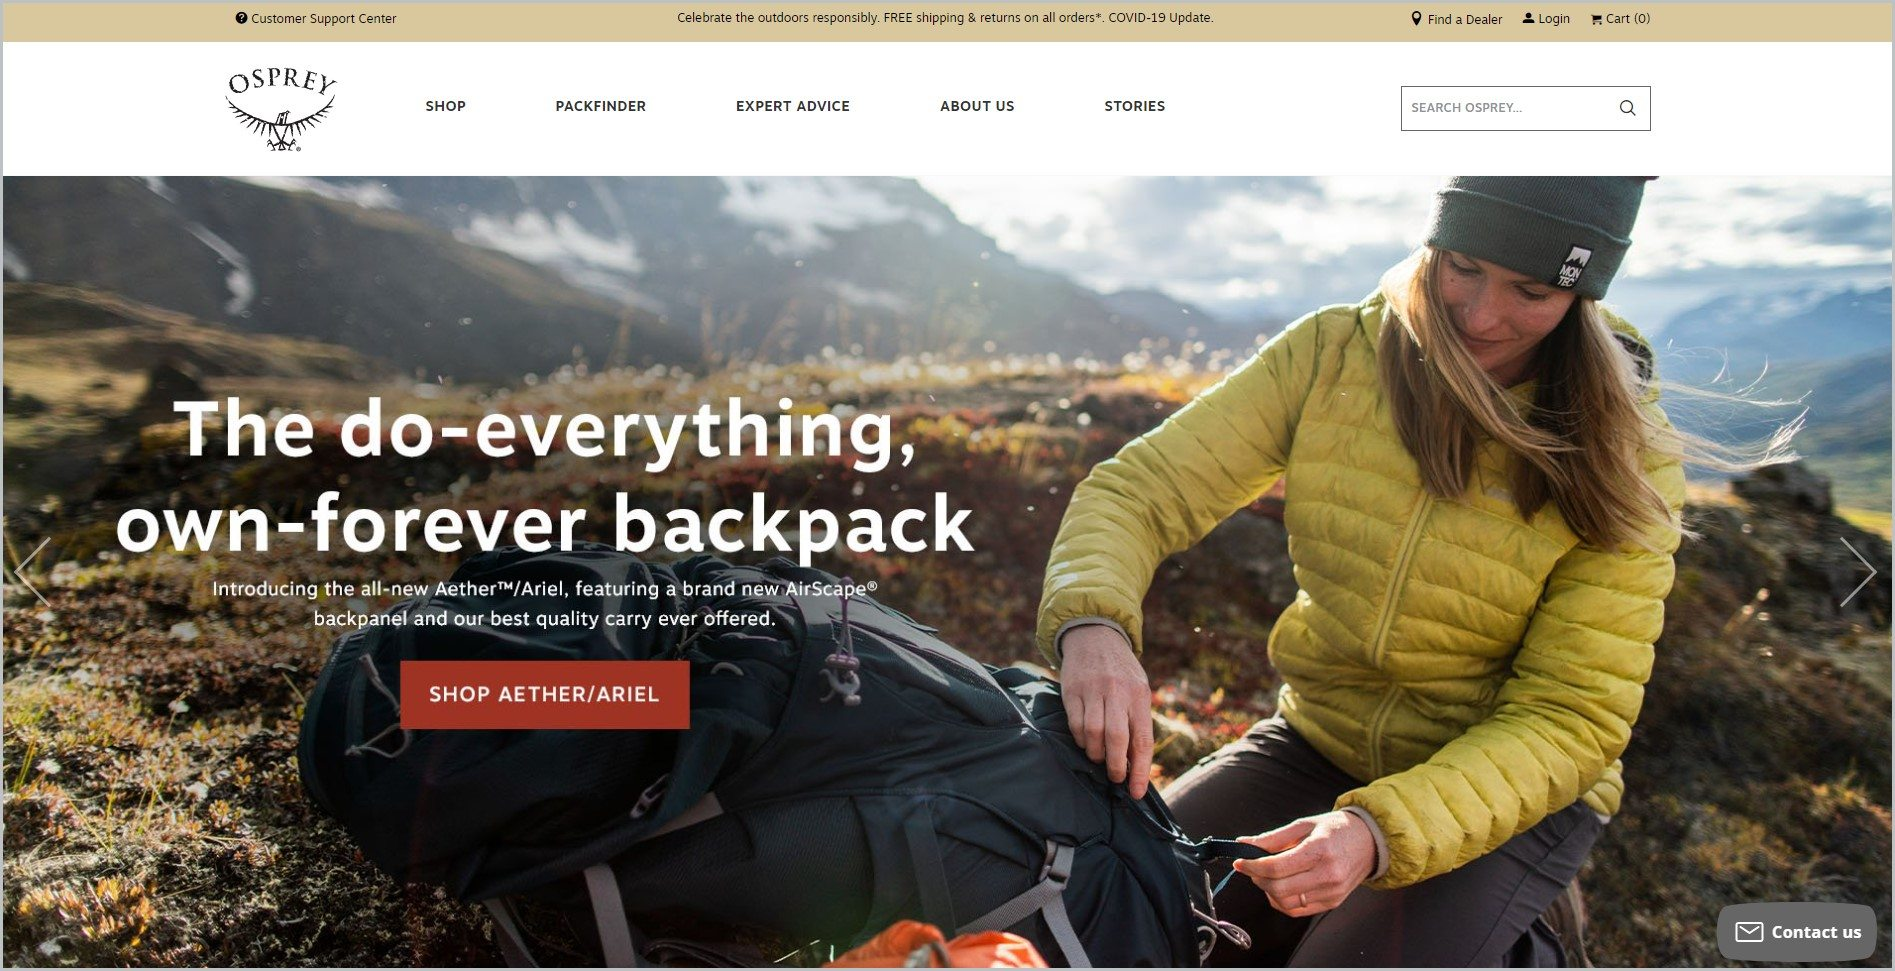 screenshot of Osprey homepage, with pale mustard-colored announcement bar, white header with the website's name and main navigation menu, and showcasing an image of a woman outdoors fixing her backpack with text overlay